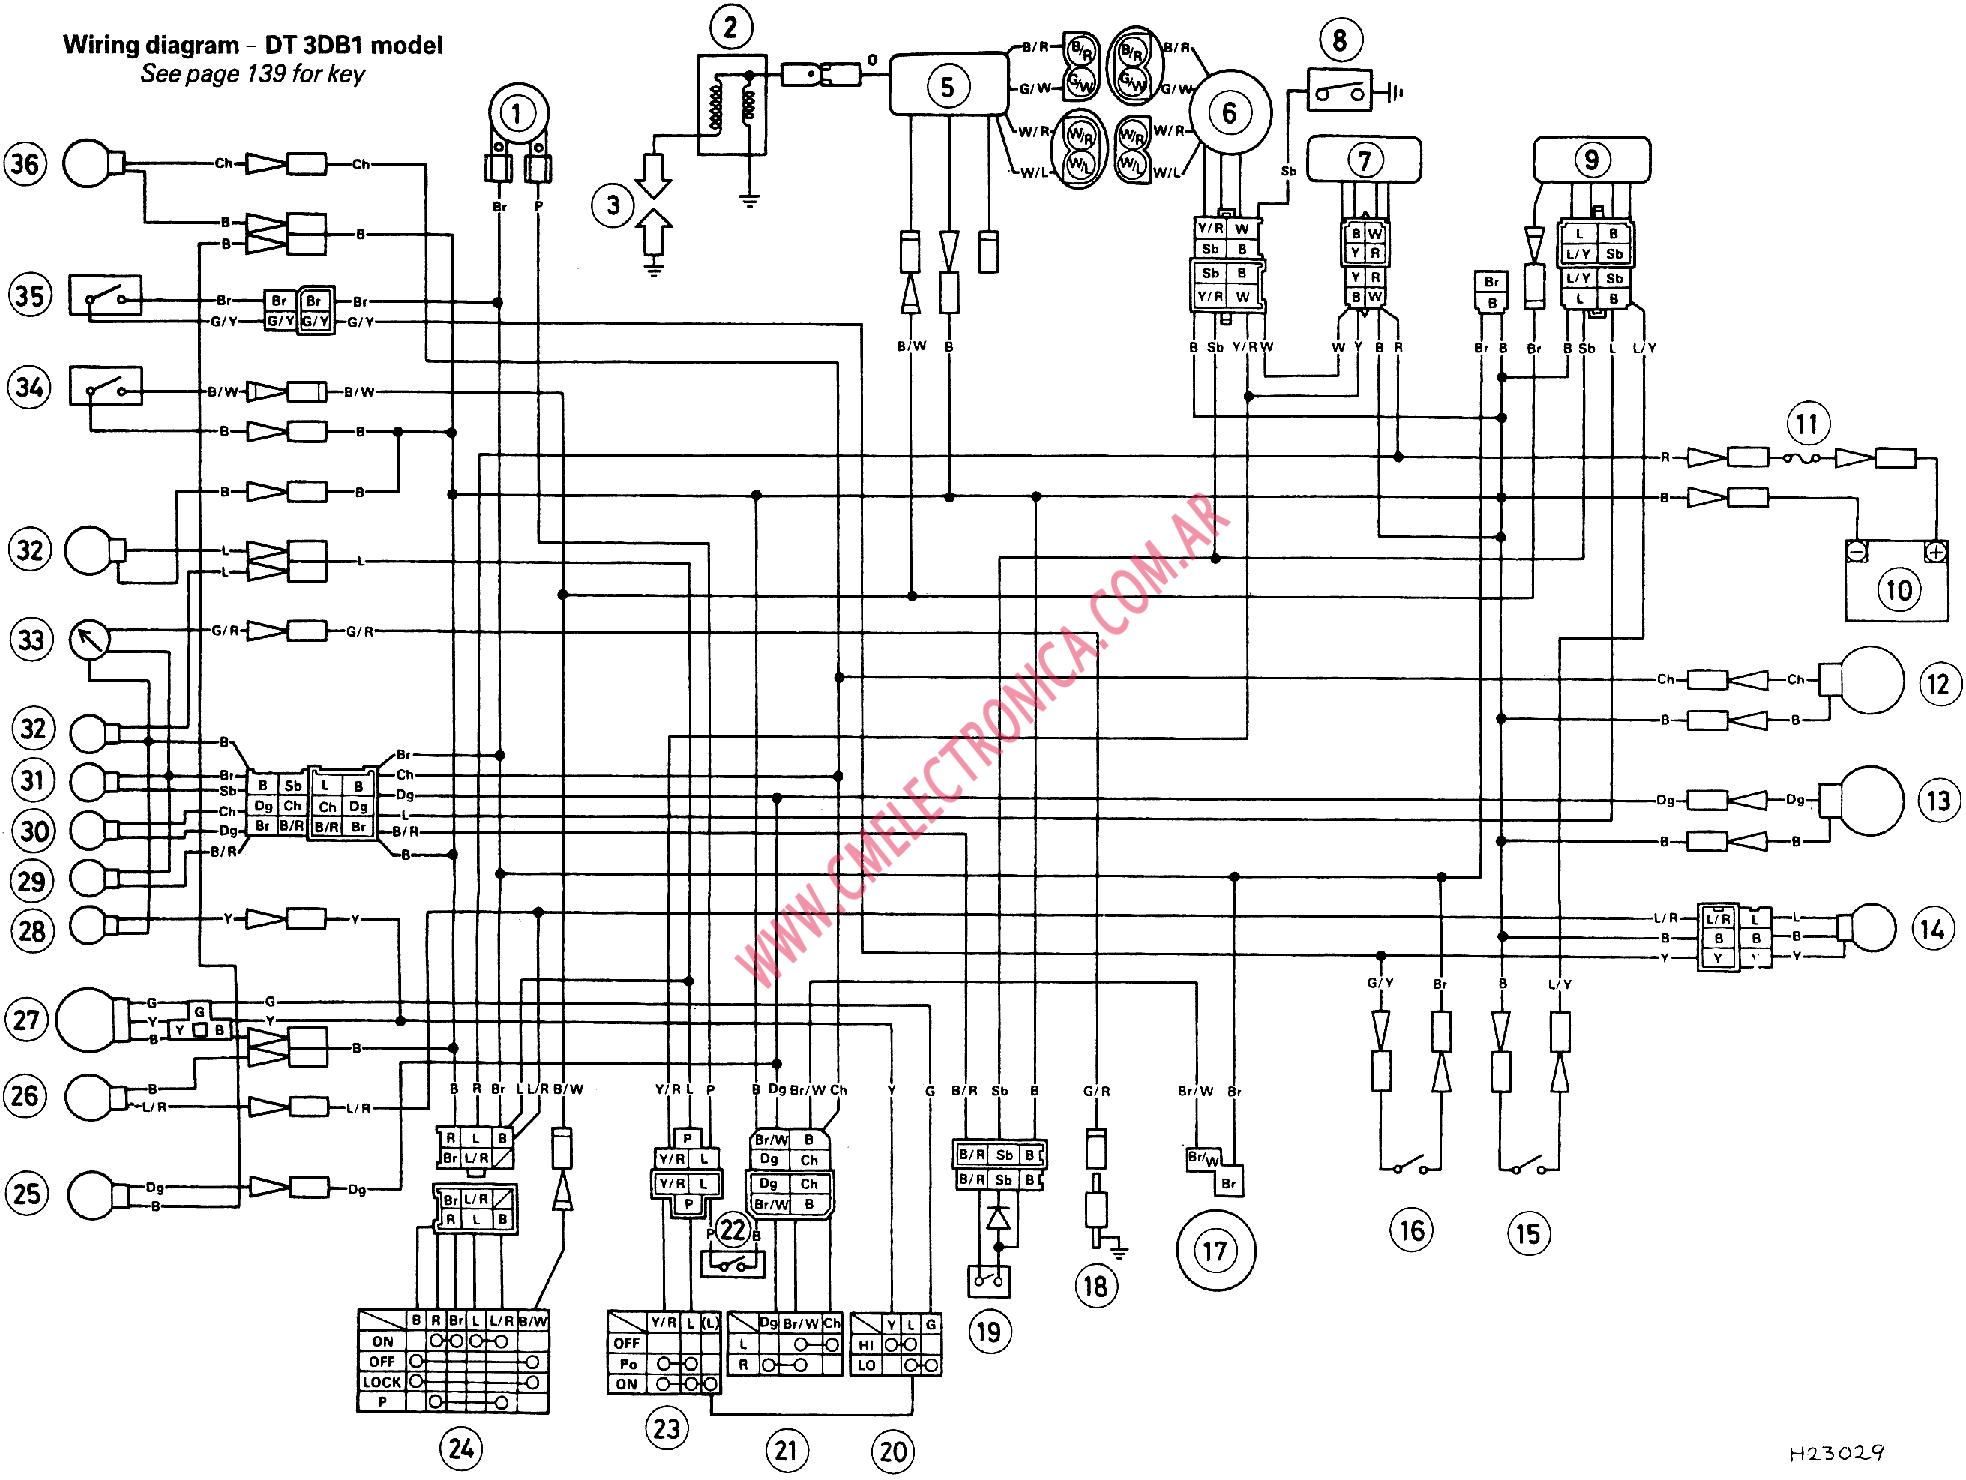 yamaha-tzr4 Yamaha Kodiak Ignition Wiring Diagram on 1997 yfm 600 wiring diagram, grizzly solenoid wiring diagram, suzuki king quad 700 wiring diagram, kodiak atv wiring diagram, yamaha color code legend, 2003 yamaha kodiak 400 wiring diagram, polaris sportsman 700 wiring diagram, yamaha kodiak atv schematics, honda foreman 450 wiring diagram, yamaha starter relay diagram, yamaha drive wiring diagrams, honda rancher 420 wiring diagram, polaris rzr wiring diagram, 2008 grizzly 450 wiring diagram, kawasaki prairie 700 wiring diagram, polaris sportsman 450 wiring diagram, yamaha kodiak parts diagram, yamaha wireing digram for kodak, polaris ranger wiring diagram, can-am outlander 400 wiring diagram,